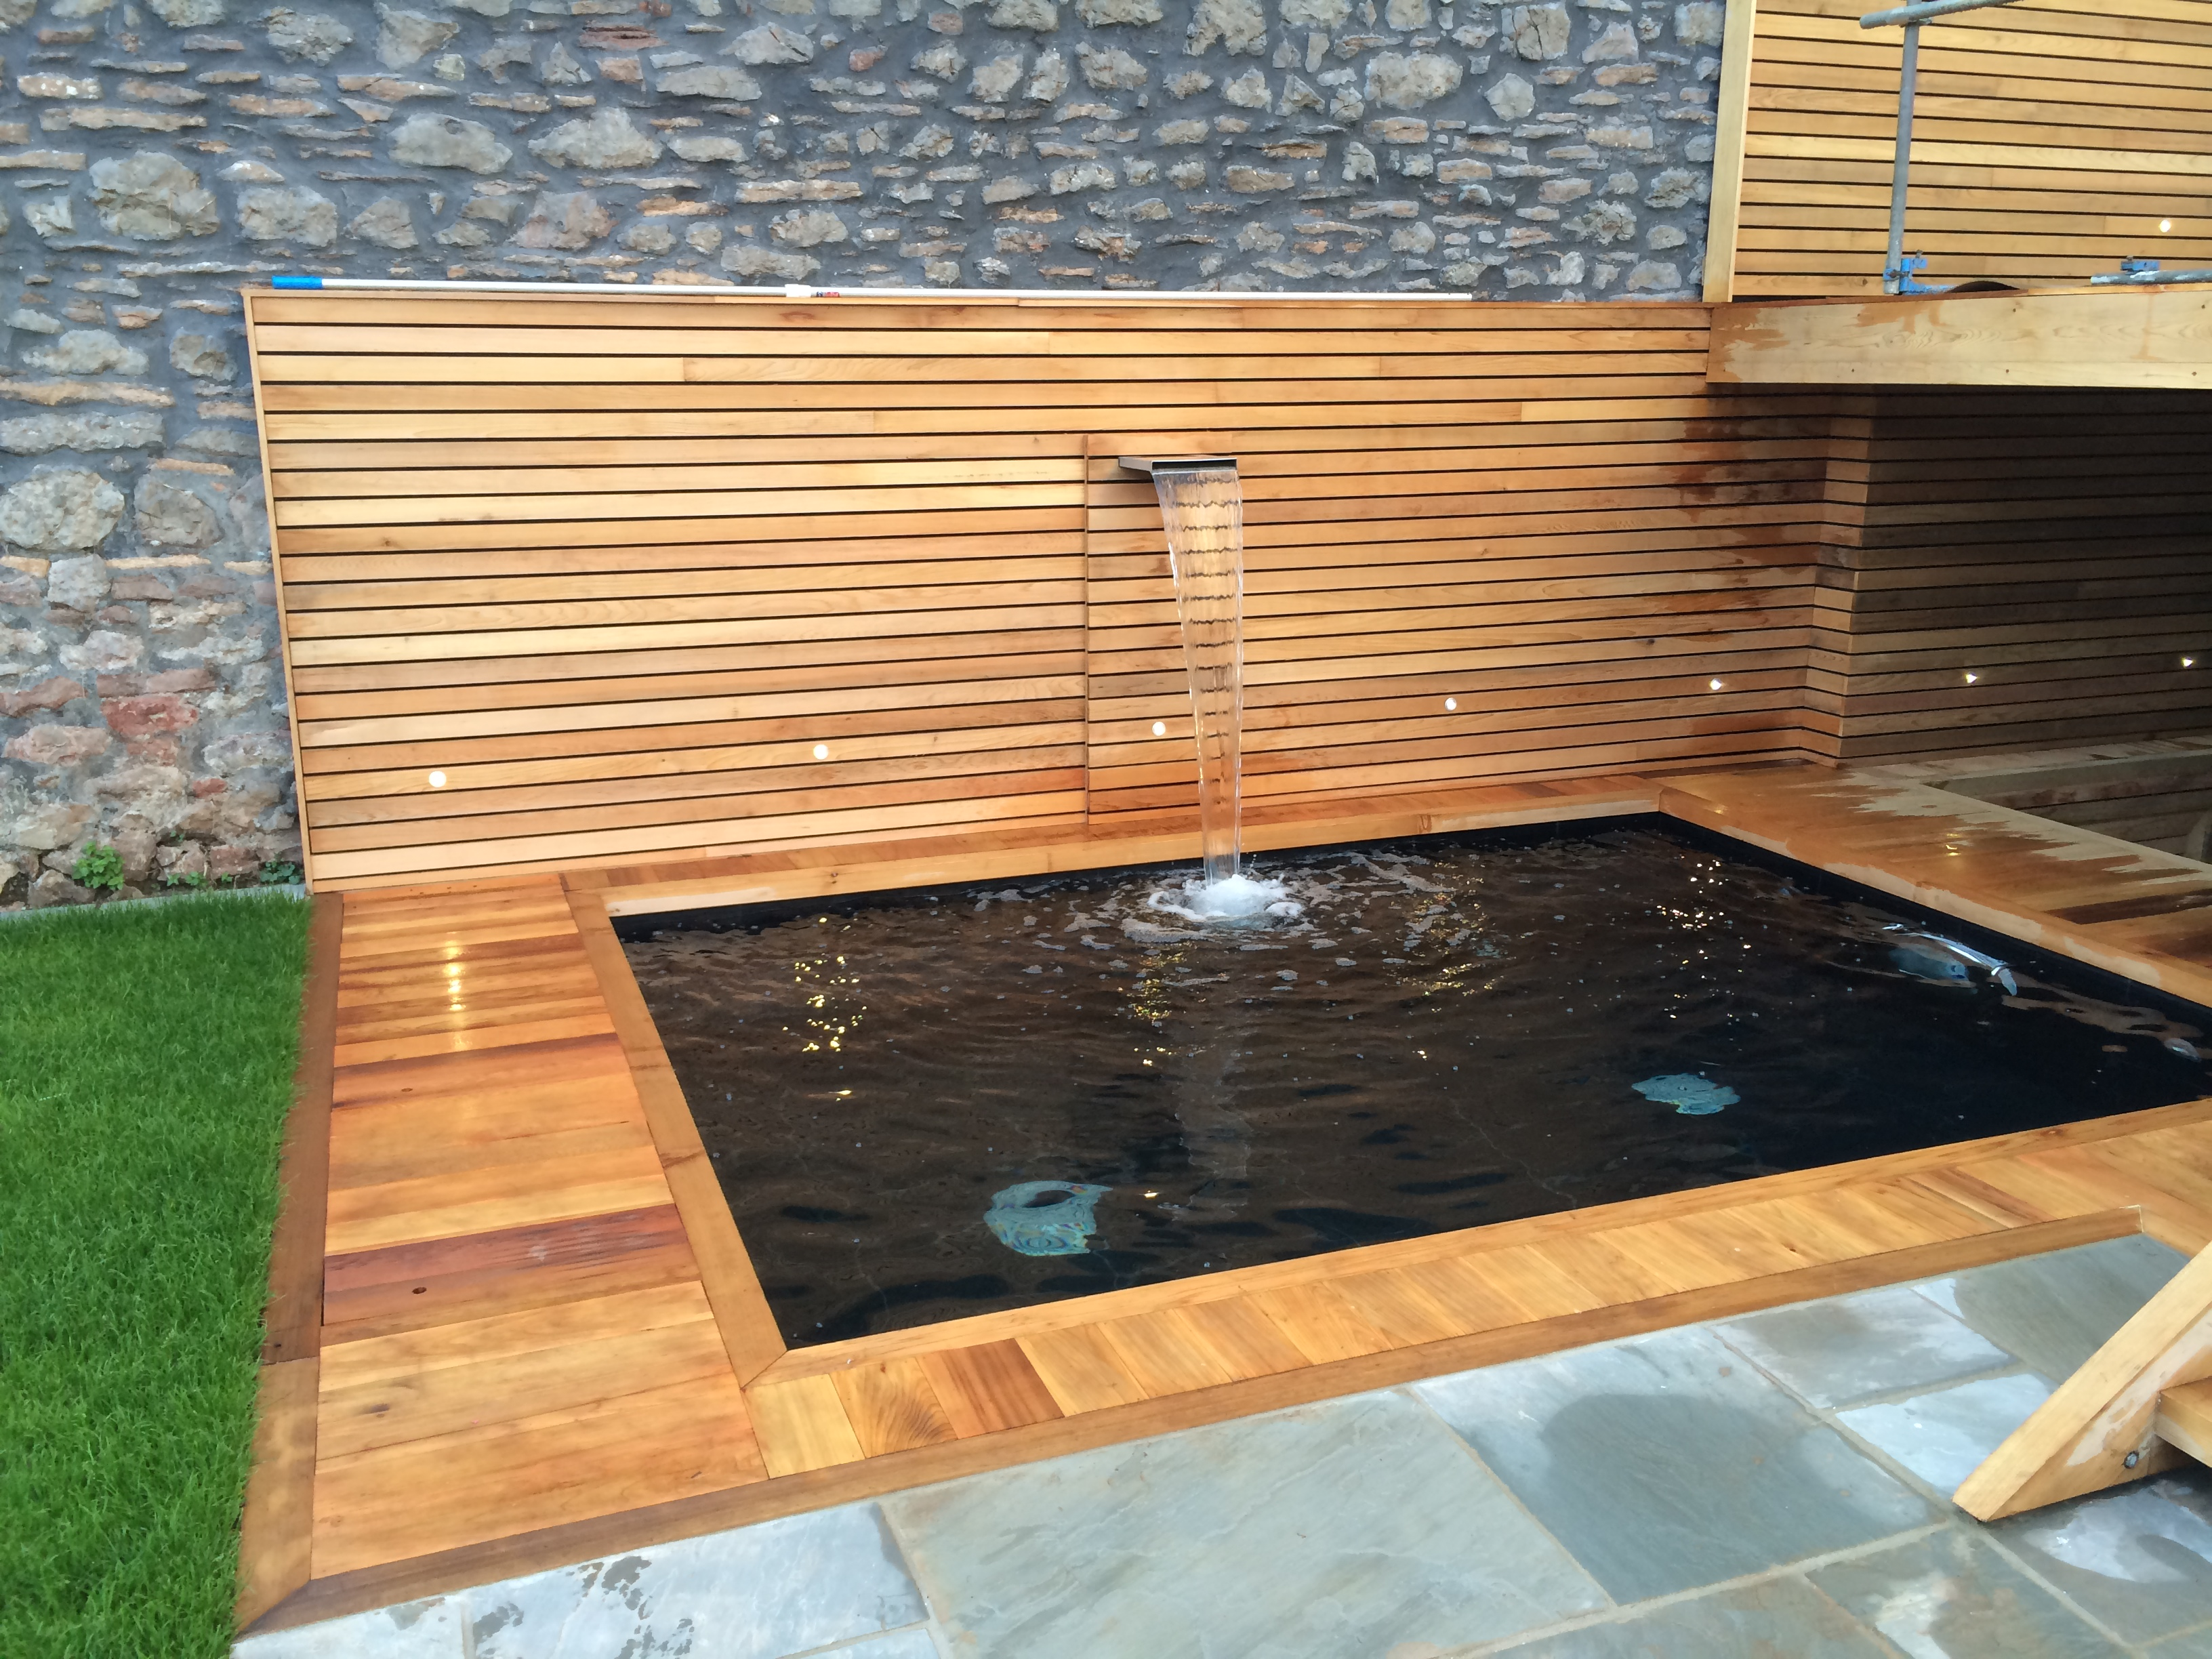 Bos Leisure Installed And Designed A Bespoke Dipping Pool Incorporating Parallel Bench Seating With The Latest Counter Cur System